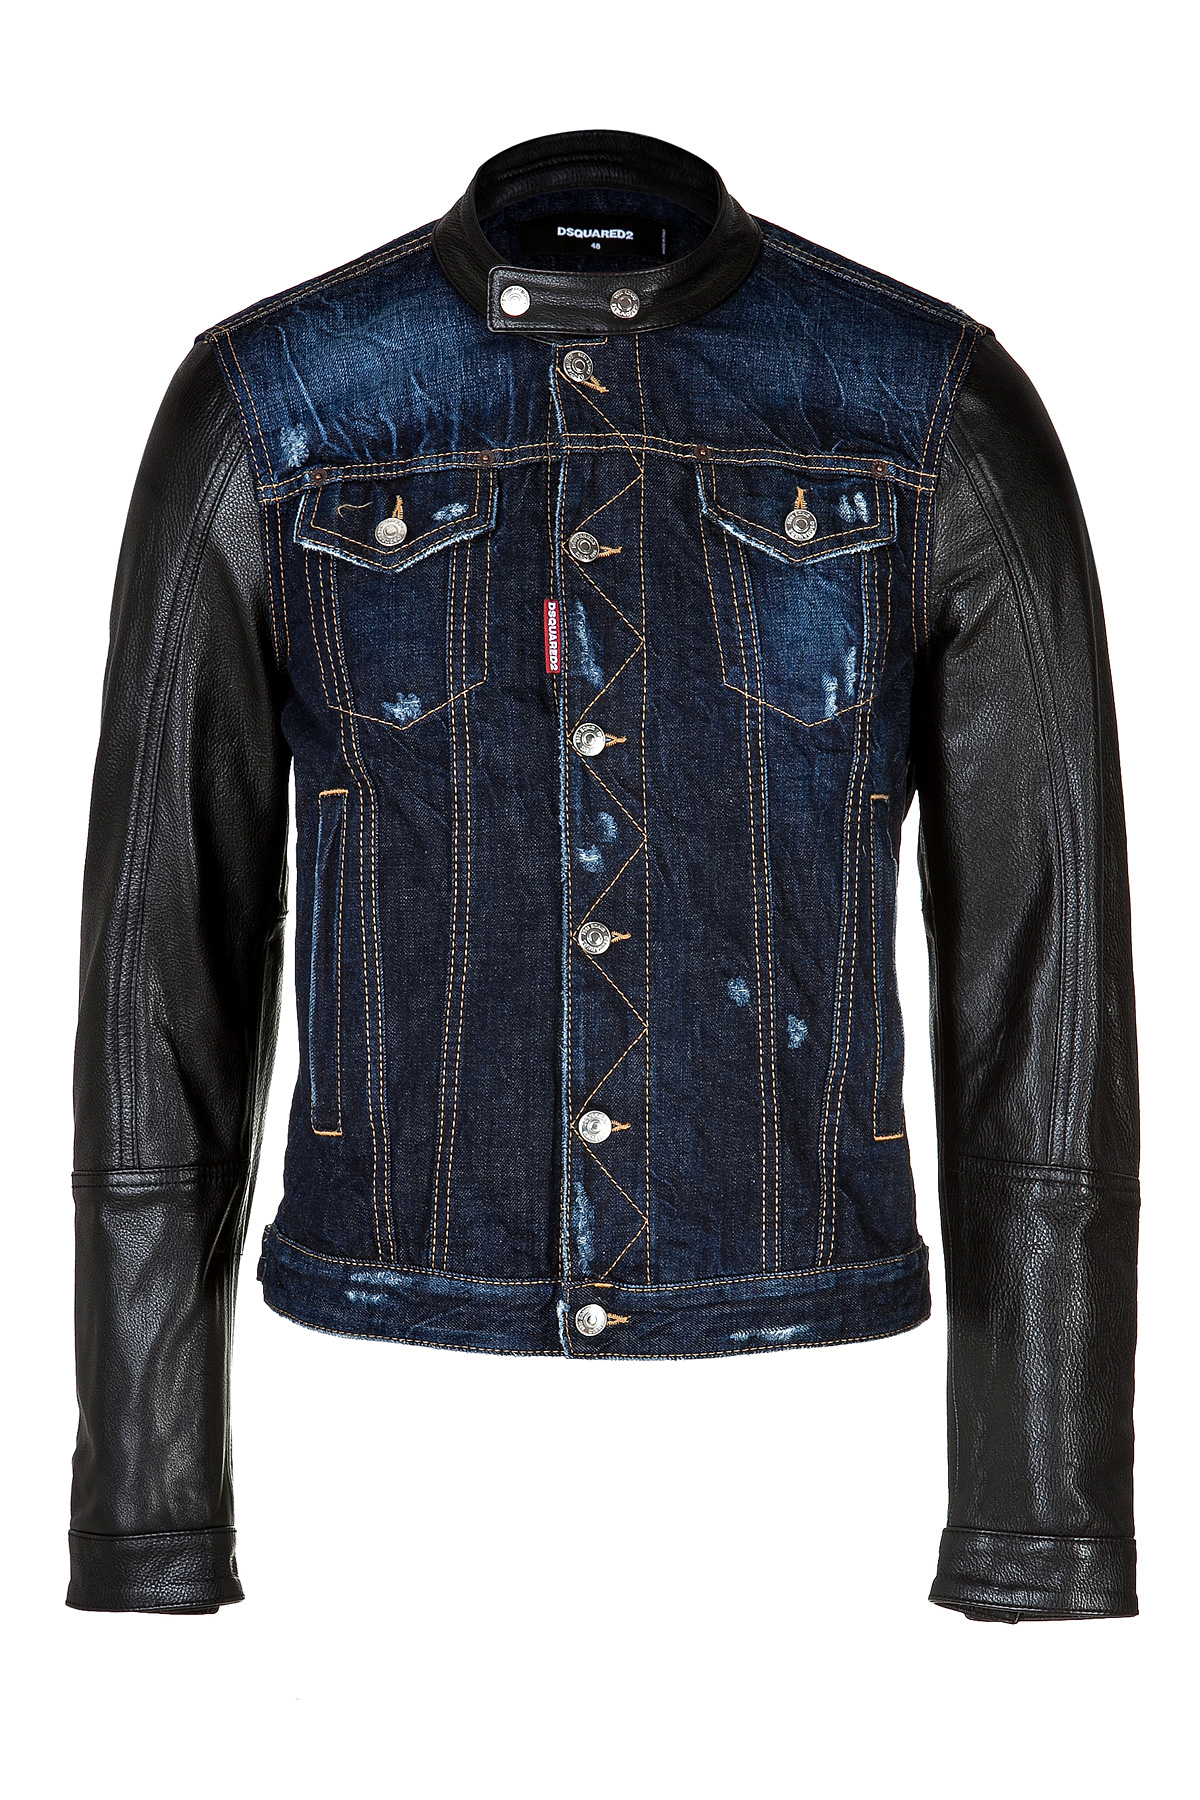 Find mens denim jacket with leather sleeves at ShopStyle. Shop the latest collection of mens denim jacket with leather sleeves from the most popular DSQUARED2 Men's Hooded Denim Jacket w/ Leather Sleeves $1, Get a Sale Alert at Harrods DSQUARED2 Leather DSQUARED2 Blue Leather And Denim Jacket $1, $1, Get a Sale Alert.